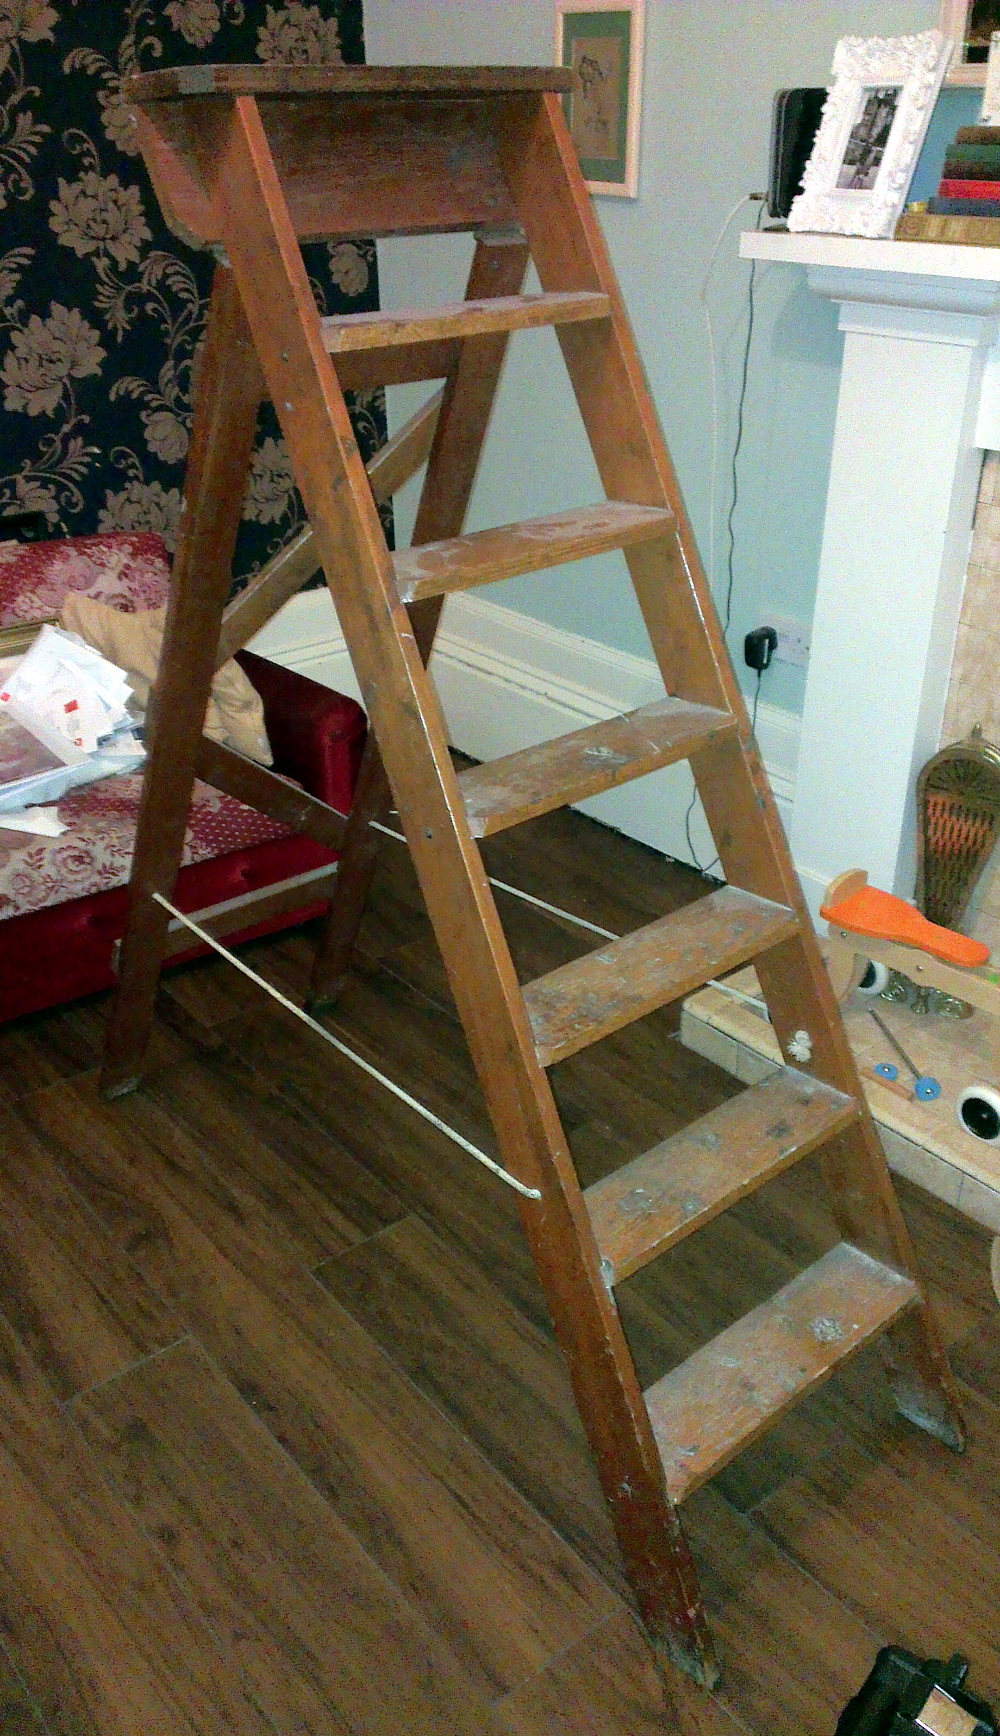 The original ladders I dragged off the street